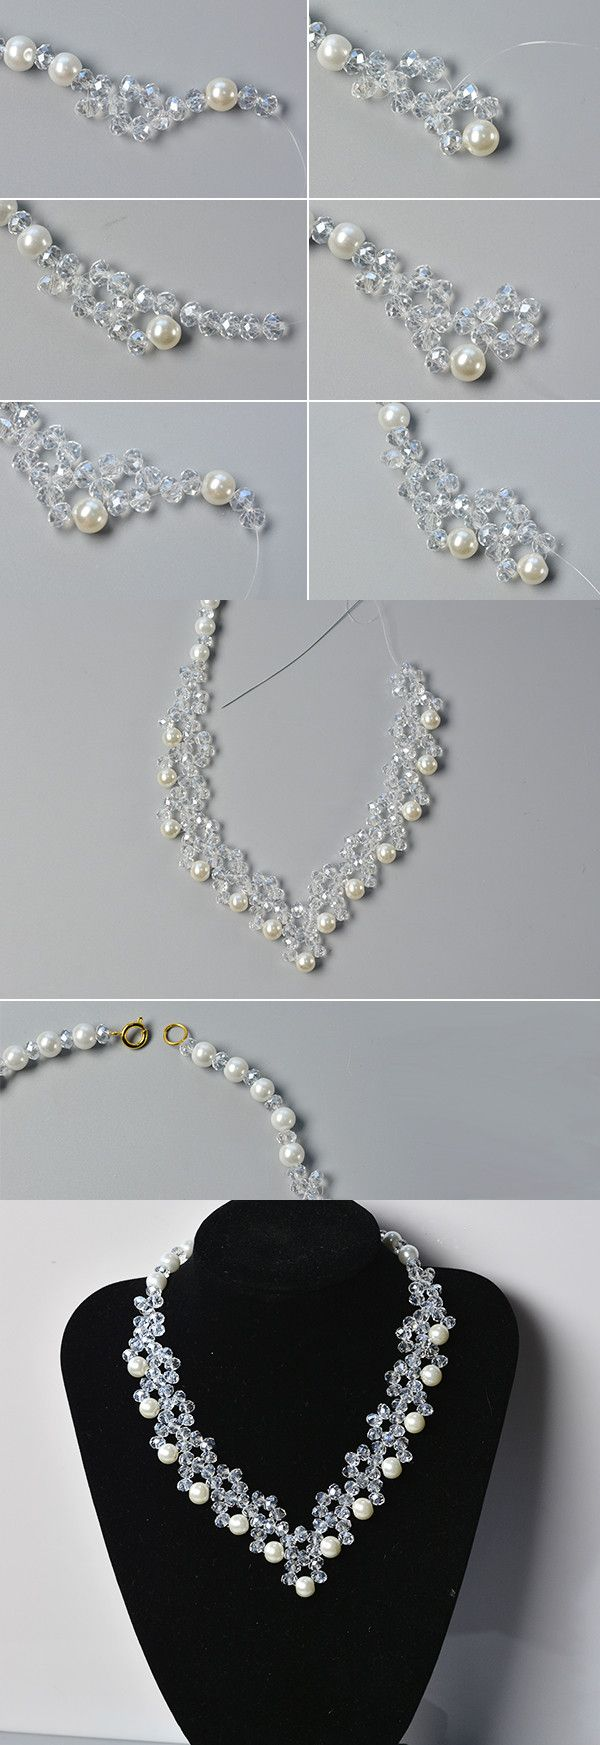 Wanna this glass and pearl beads necklace?The tutorial will be published by LC.Pandahall.com soon.